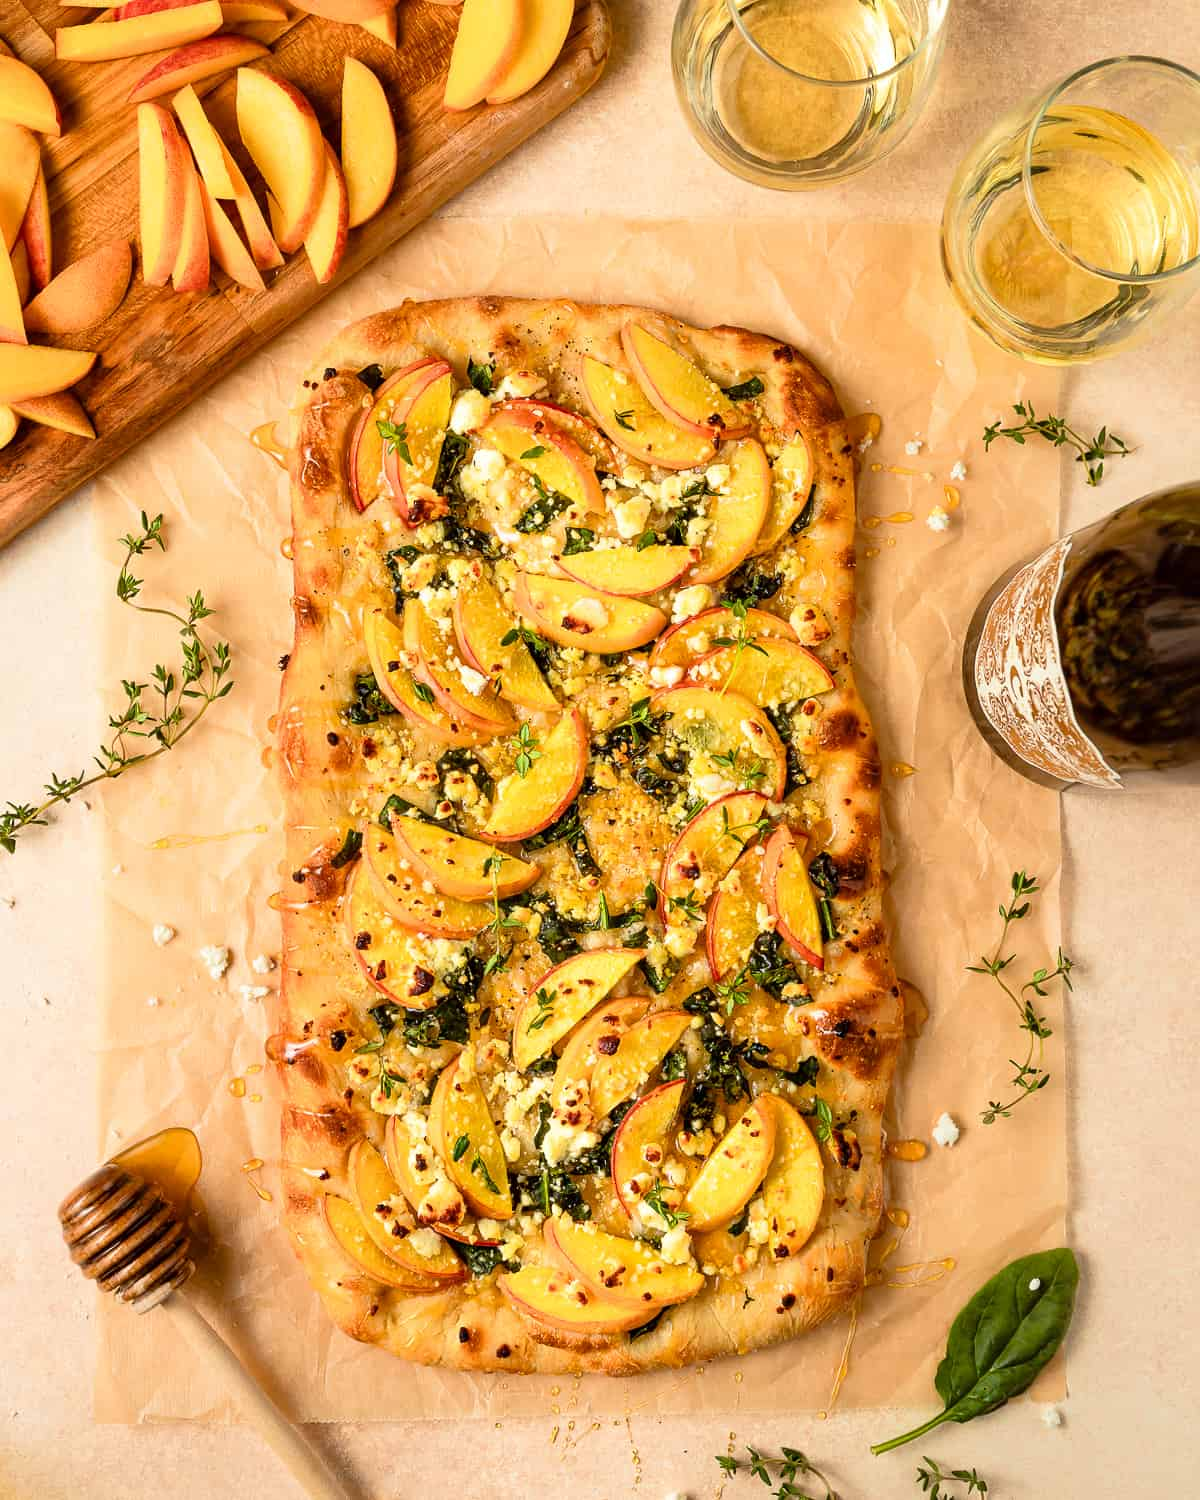 peach and goat cheese pizza with honey balsamic glaze